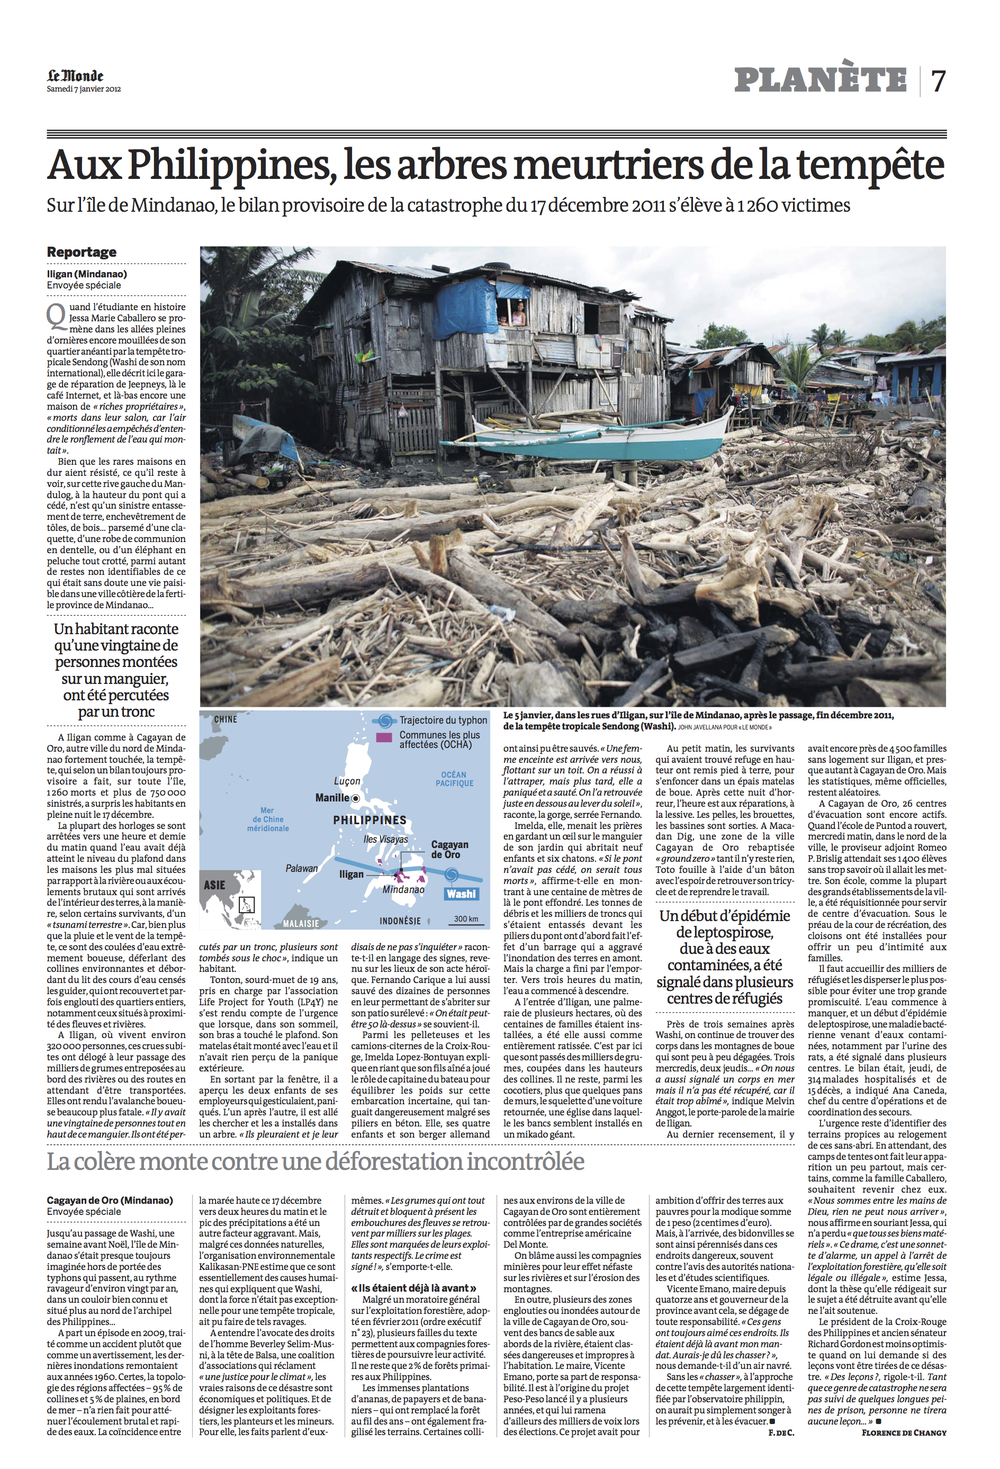 Typhoon Sendong for Le Monde